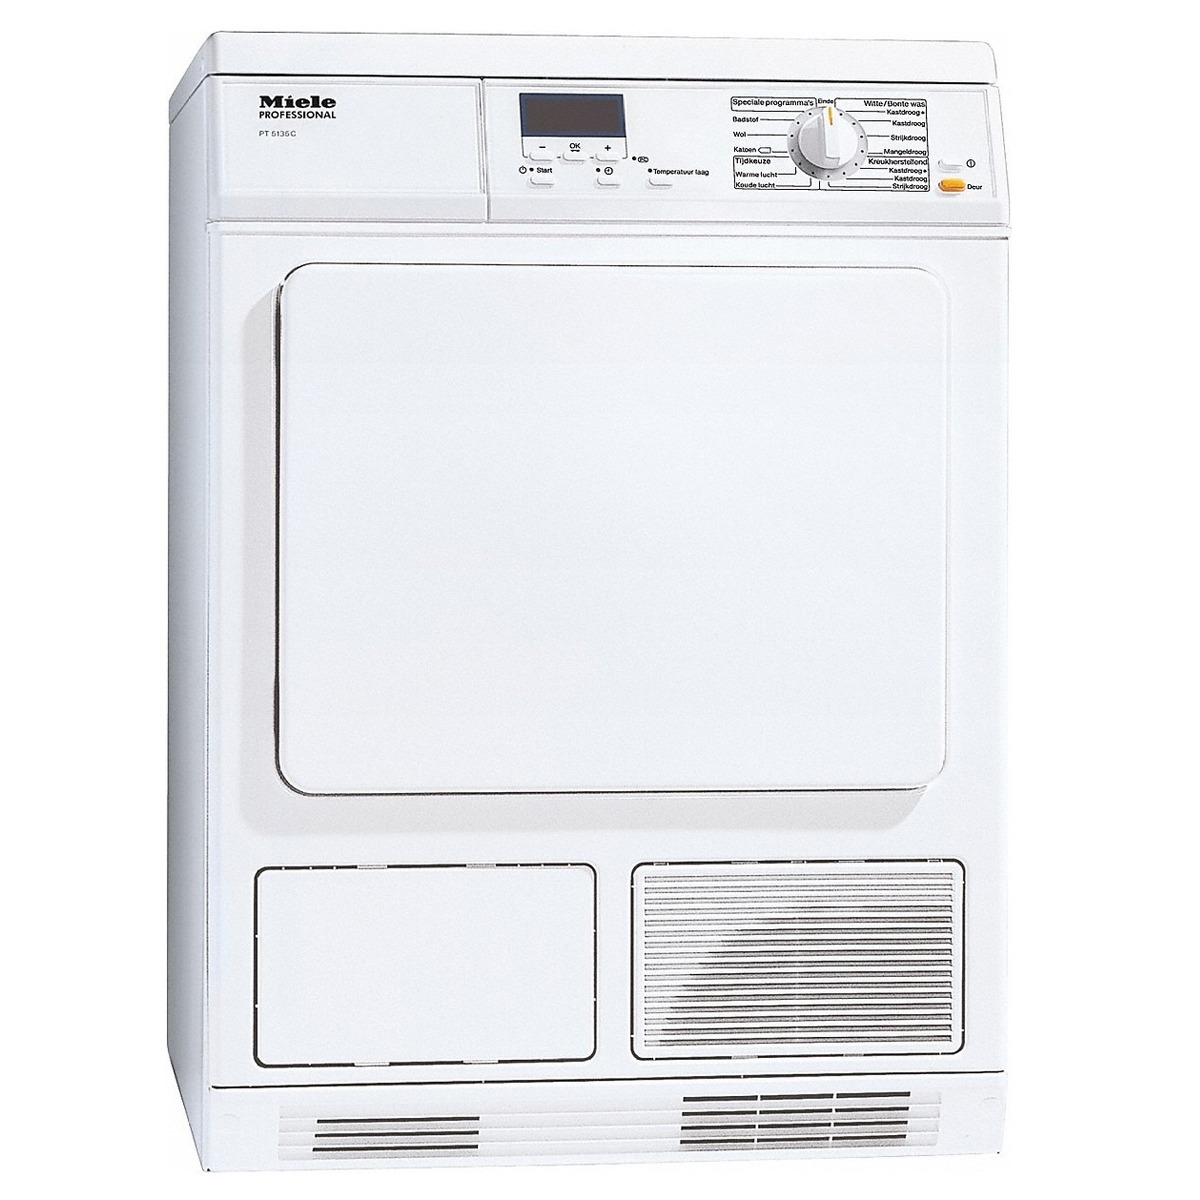 Miele condensdroger PT 5135 C LW